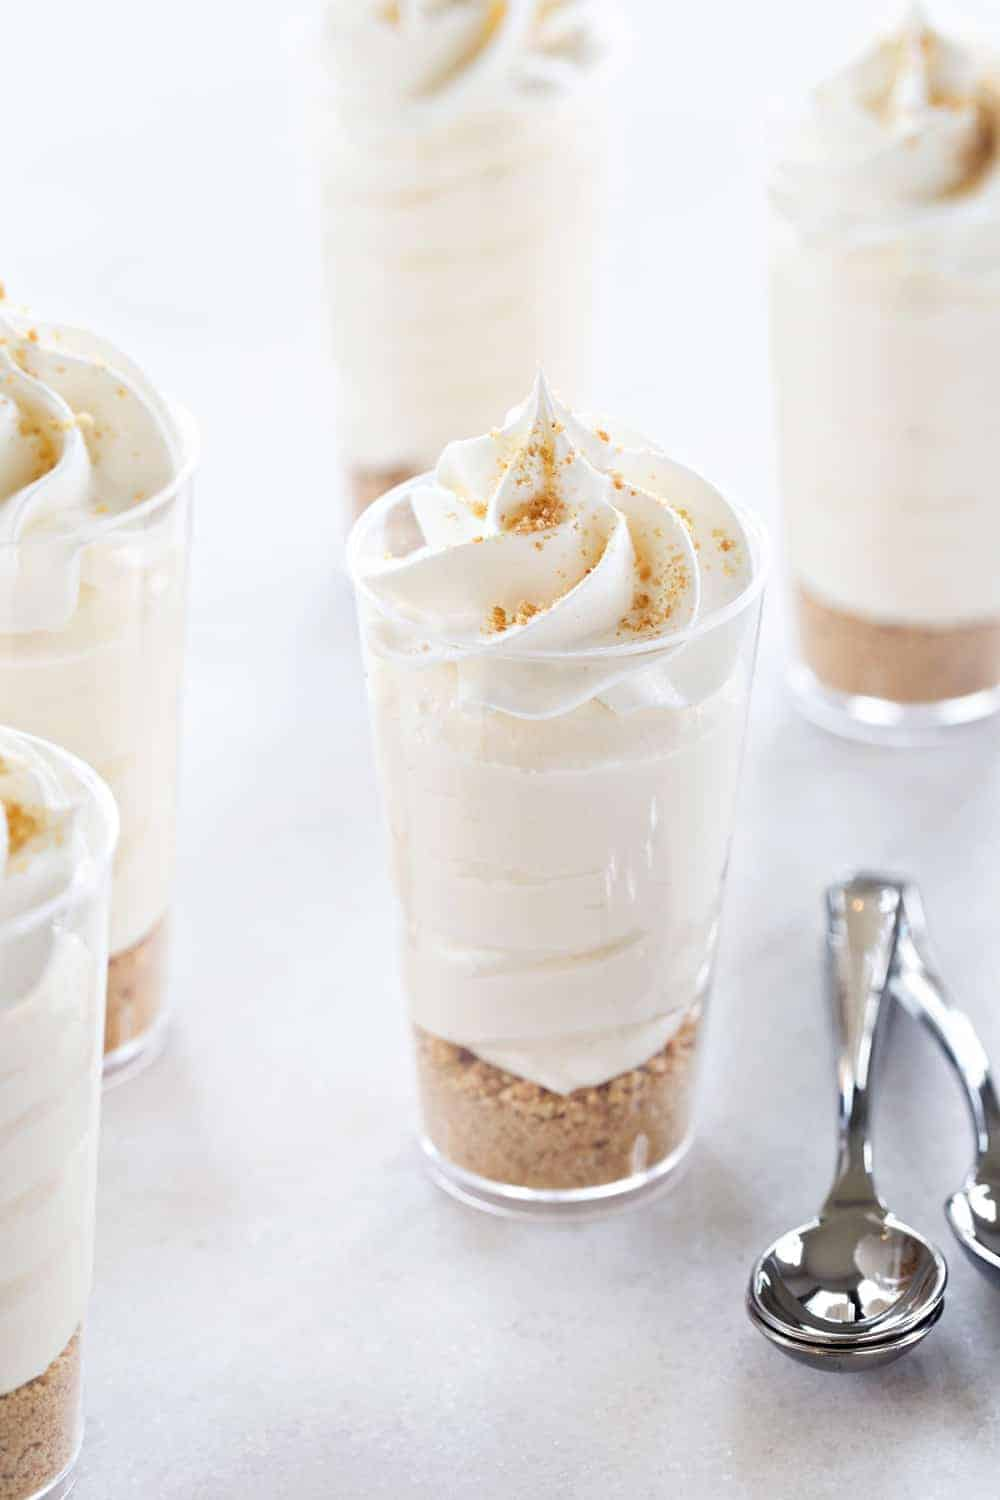 RumChata Cheesecake Pudding Shots come together in less than ten minutes with only 5 ingredients. Simple and so delicious!